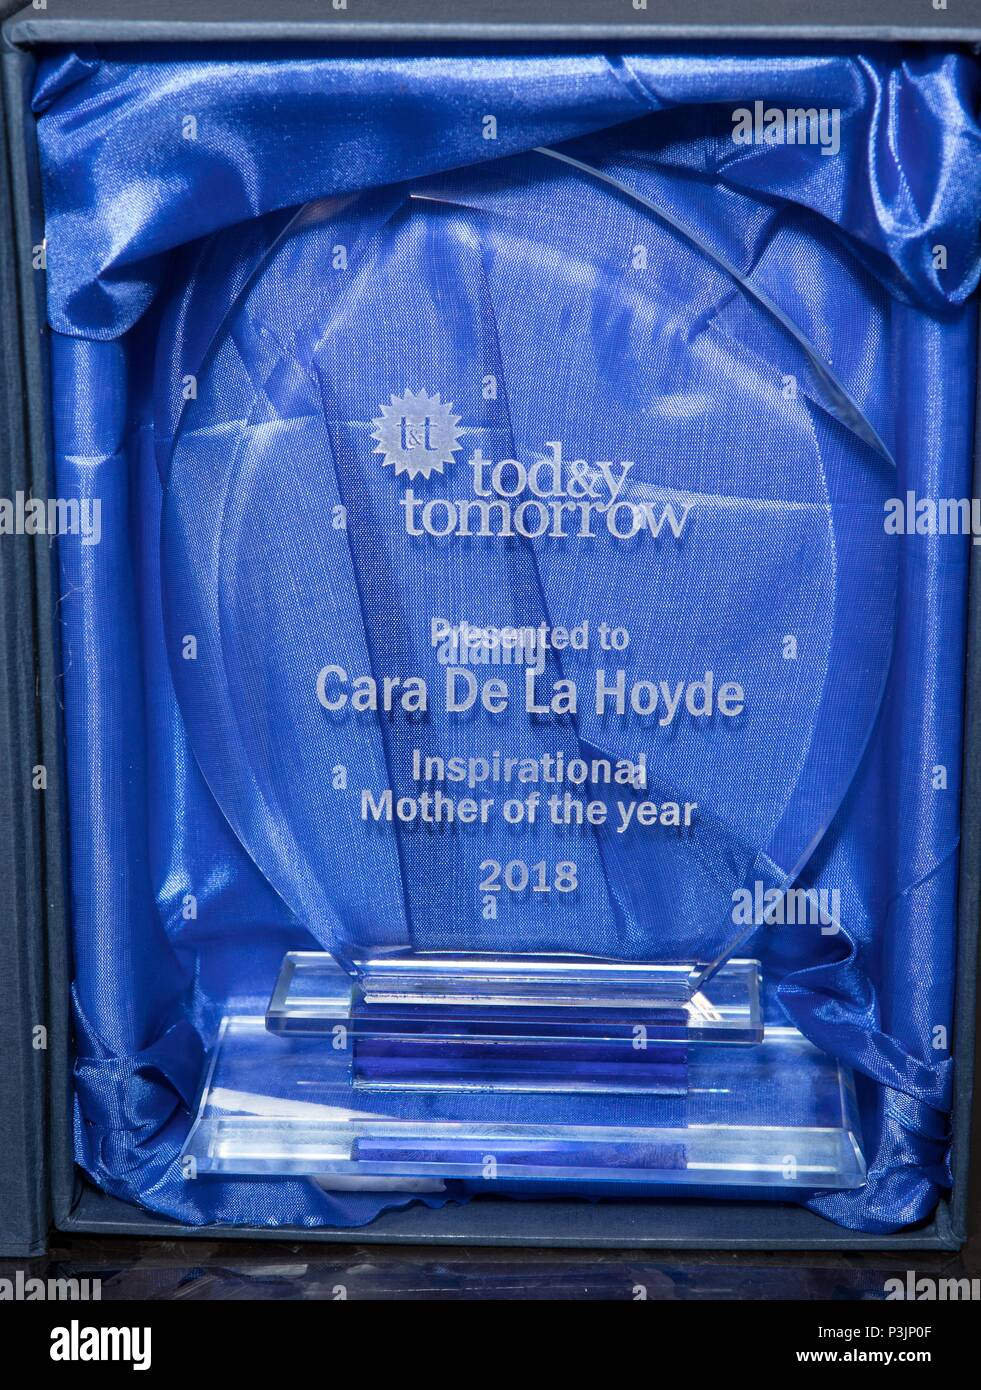 Cara de la Hoyde collects award from Charity 'Today and Tomorrow' for Inspirational Mother of the Year. Nathan Massey attended the event to support her  Featuring: Award Where: London, United Kingdom When: 18 May 2018 Credit: Phil Lewis/WENN.com - Stock Image